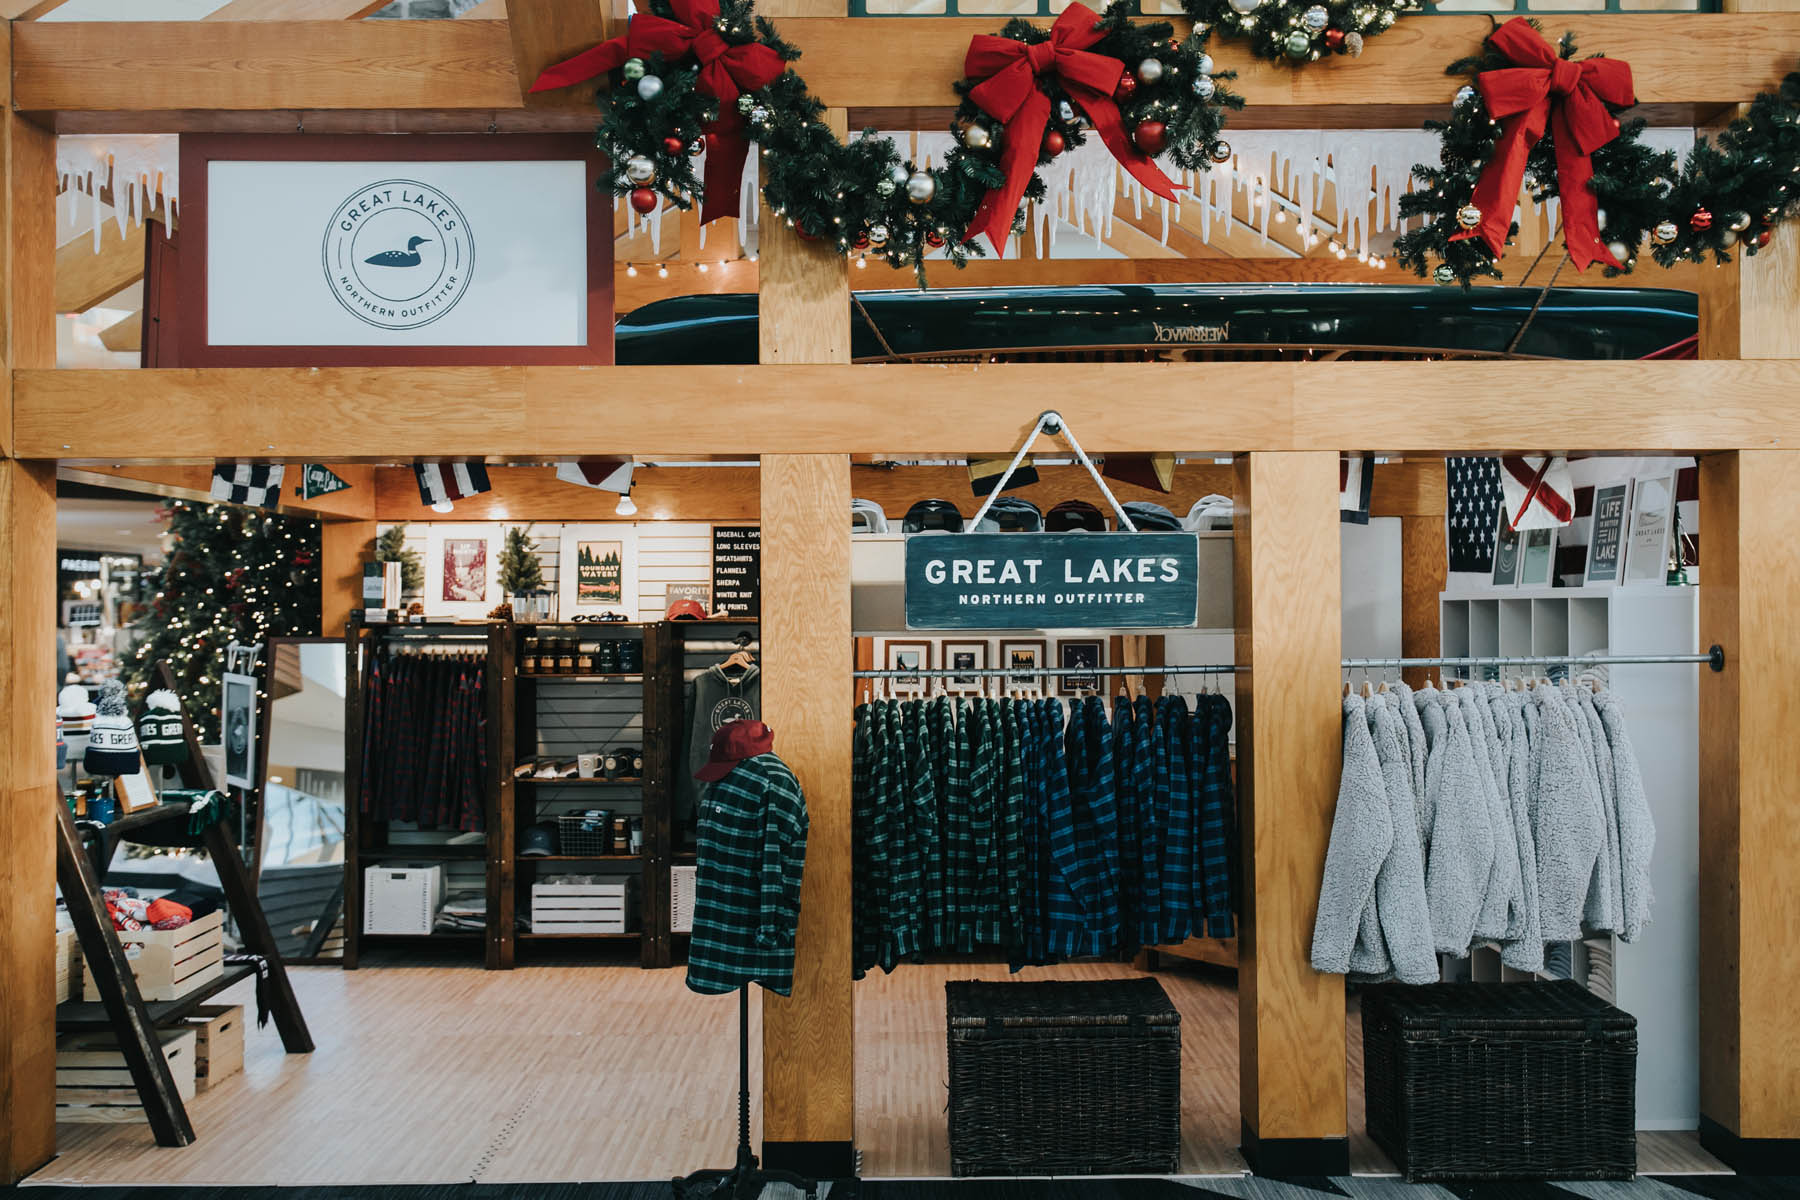 Great Lakes Holiday Shop